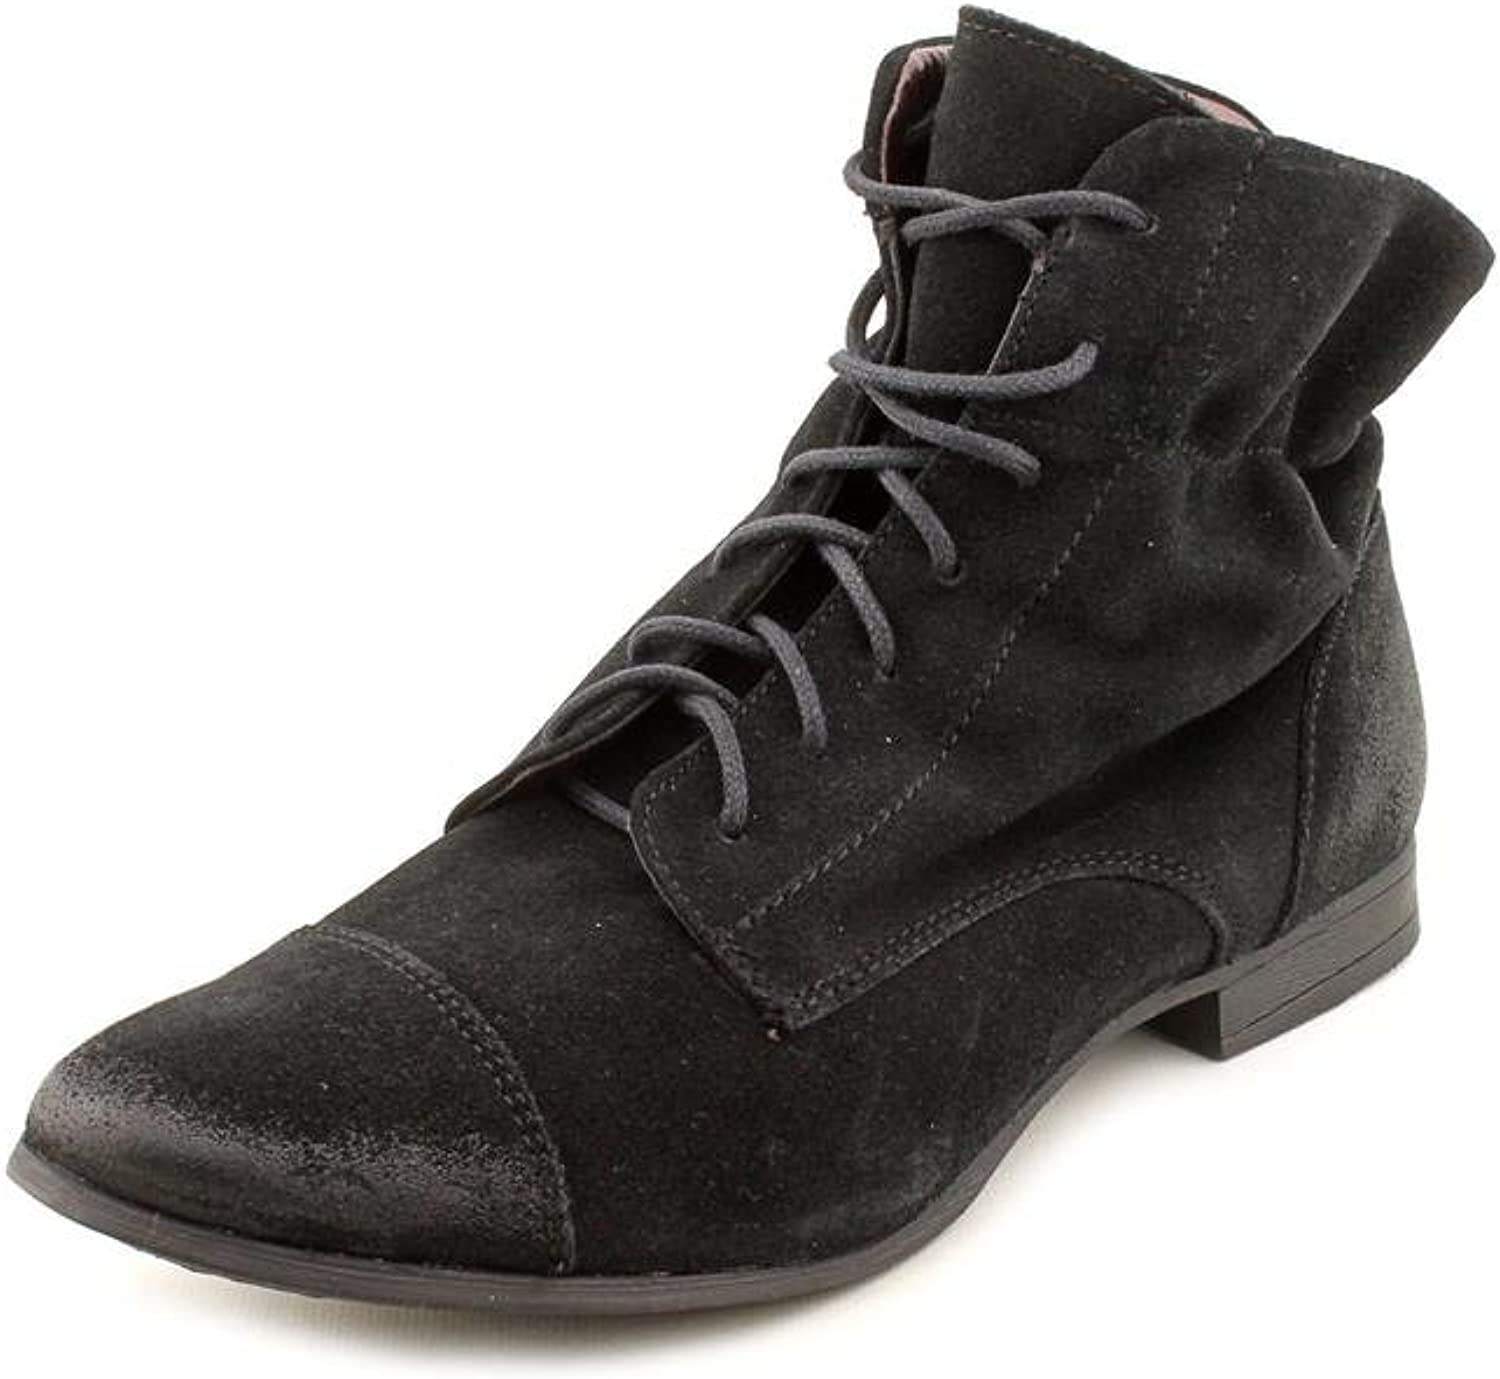 Report Signature Anzu Womens US Size 6.5 Black Fashion Ankle Boots